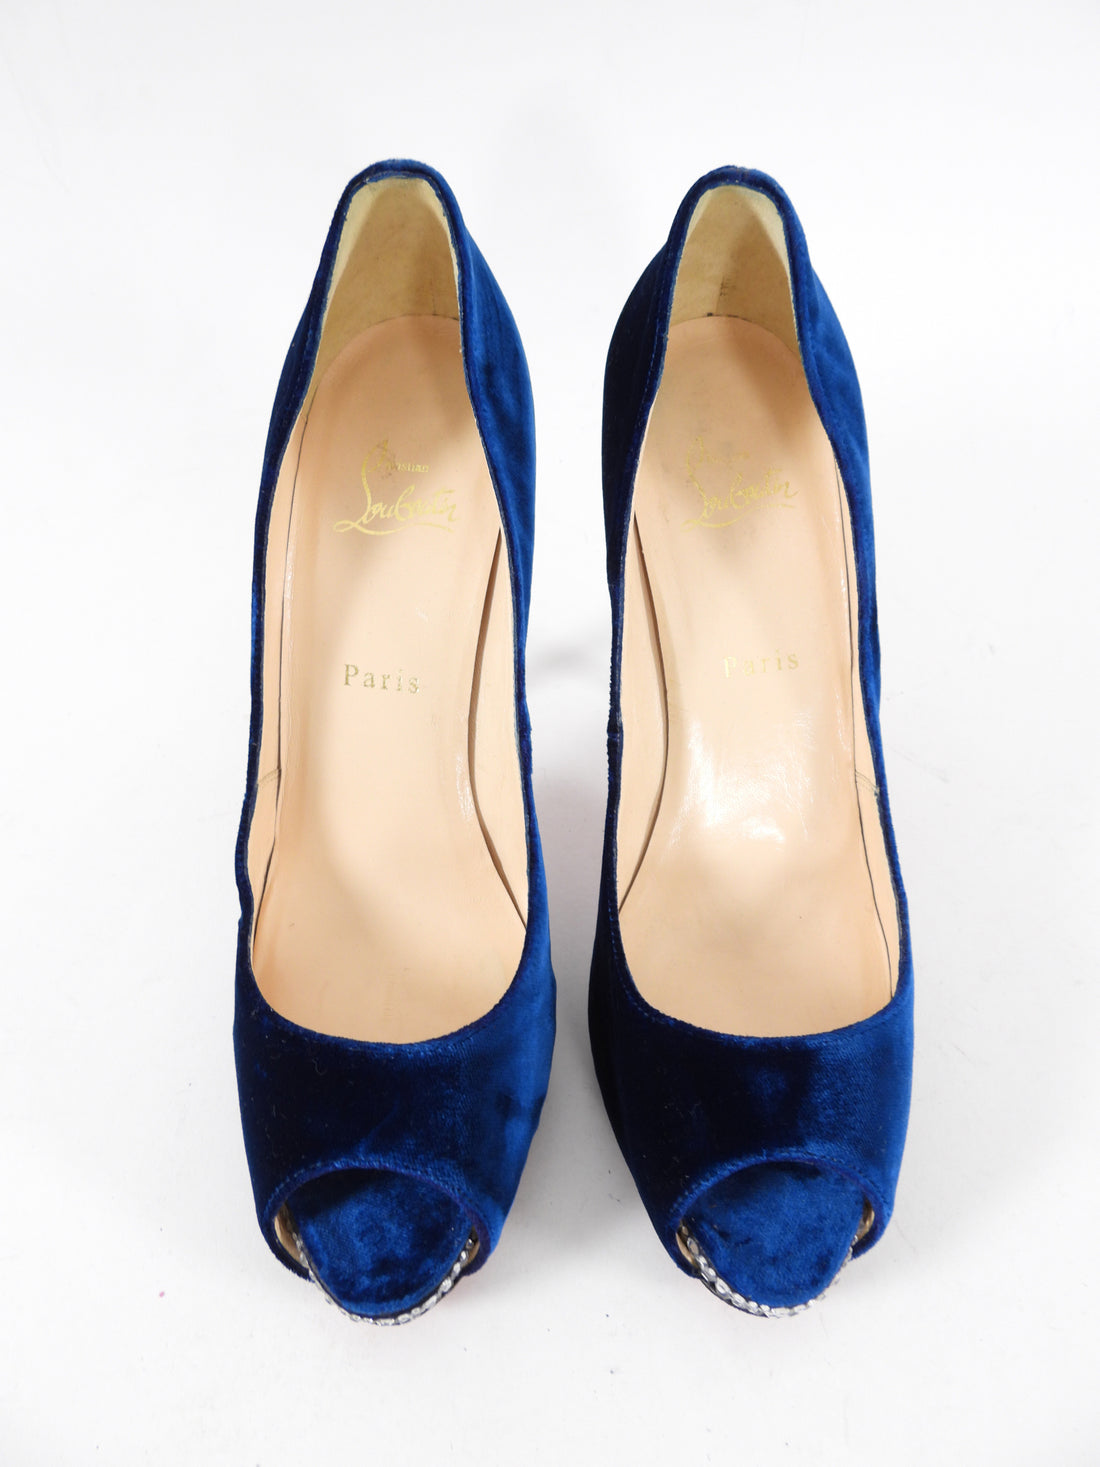 Christian Louboutin Blue Velvet Very Prive Crystal Pumps - 40 / 9.5